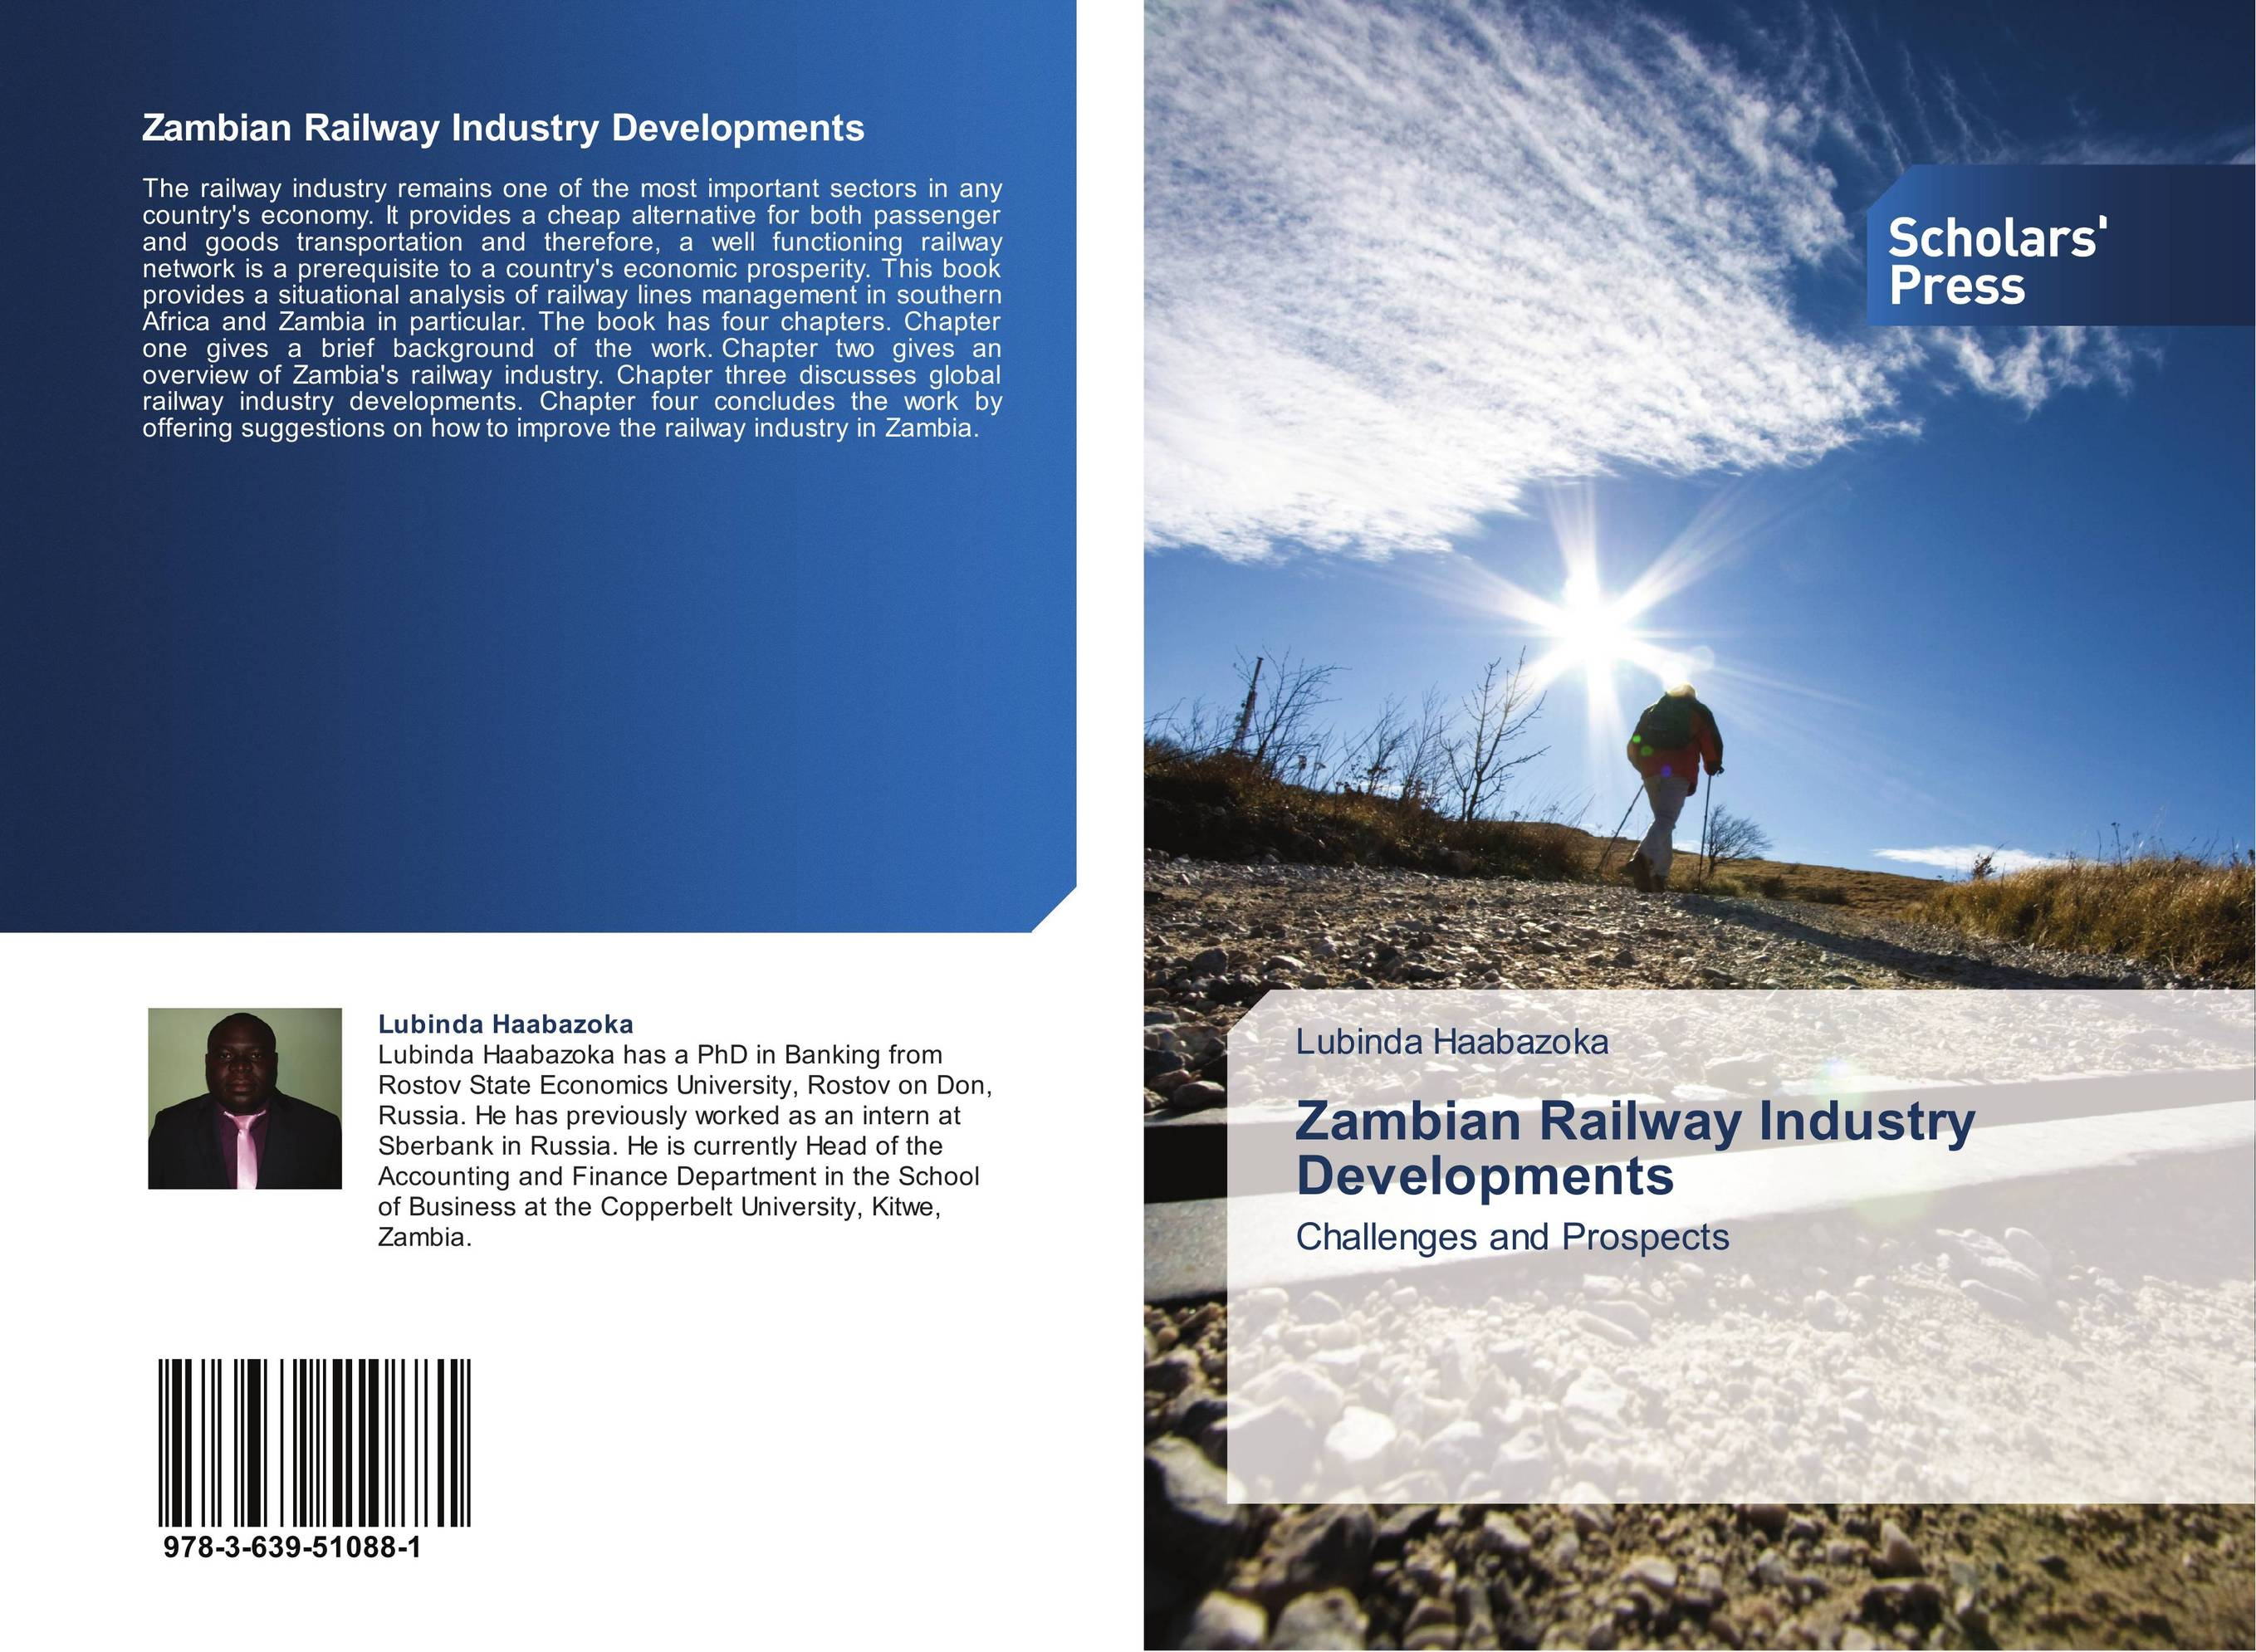 Zambian Railway Industry Developments recycle and reuse of waste water for a railway station